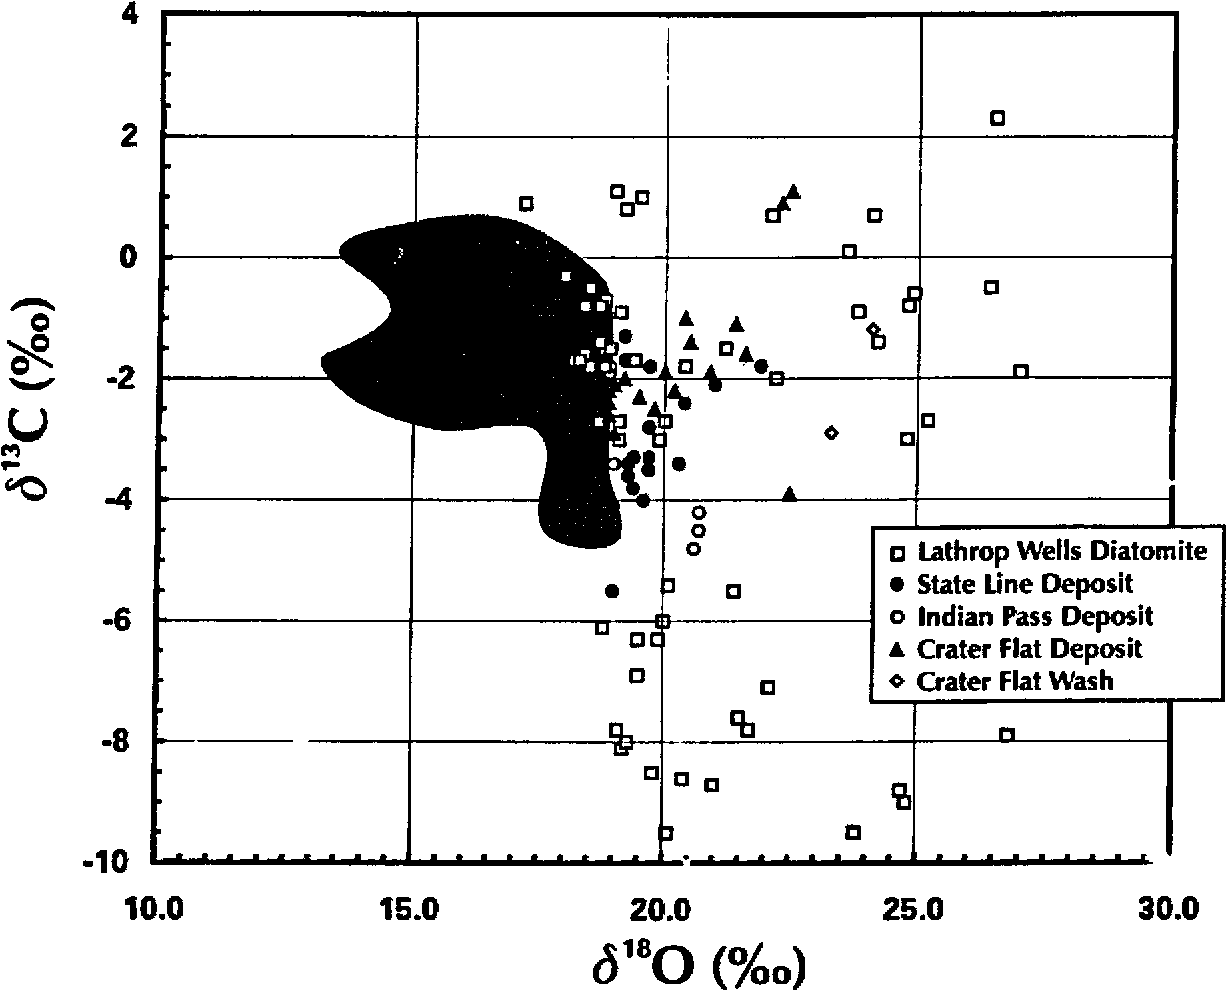 Figure 22 from SYNTHESIS OF GROUNDWATER DISCHARGE DEPOSITS